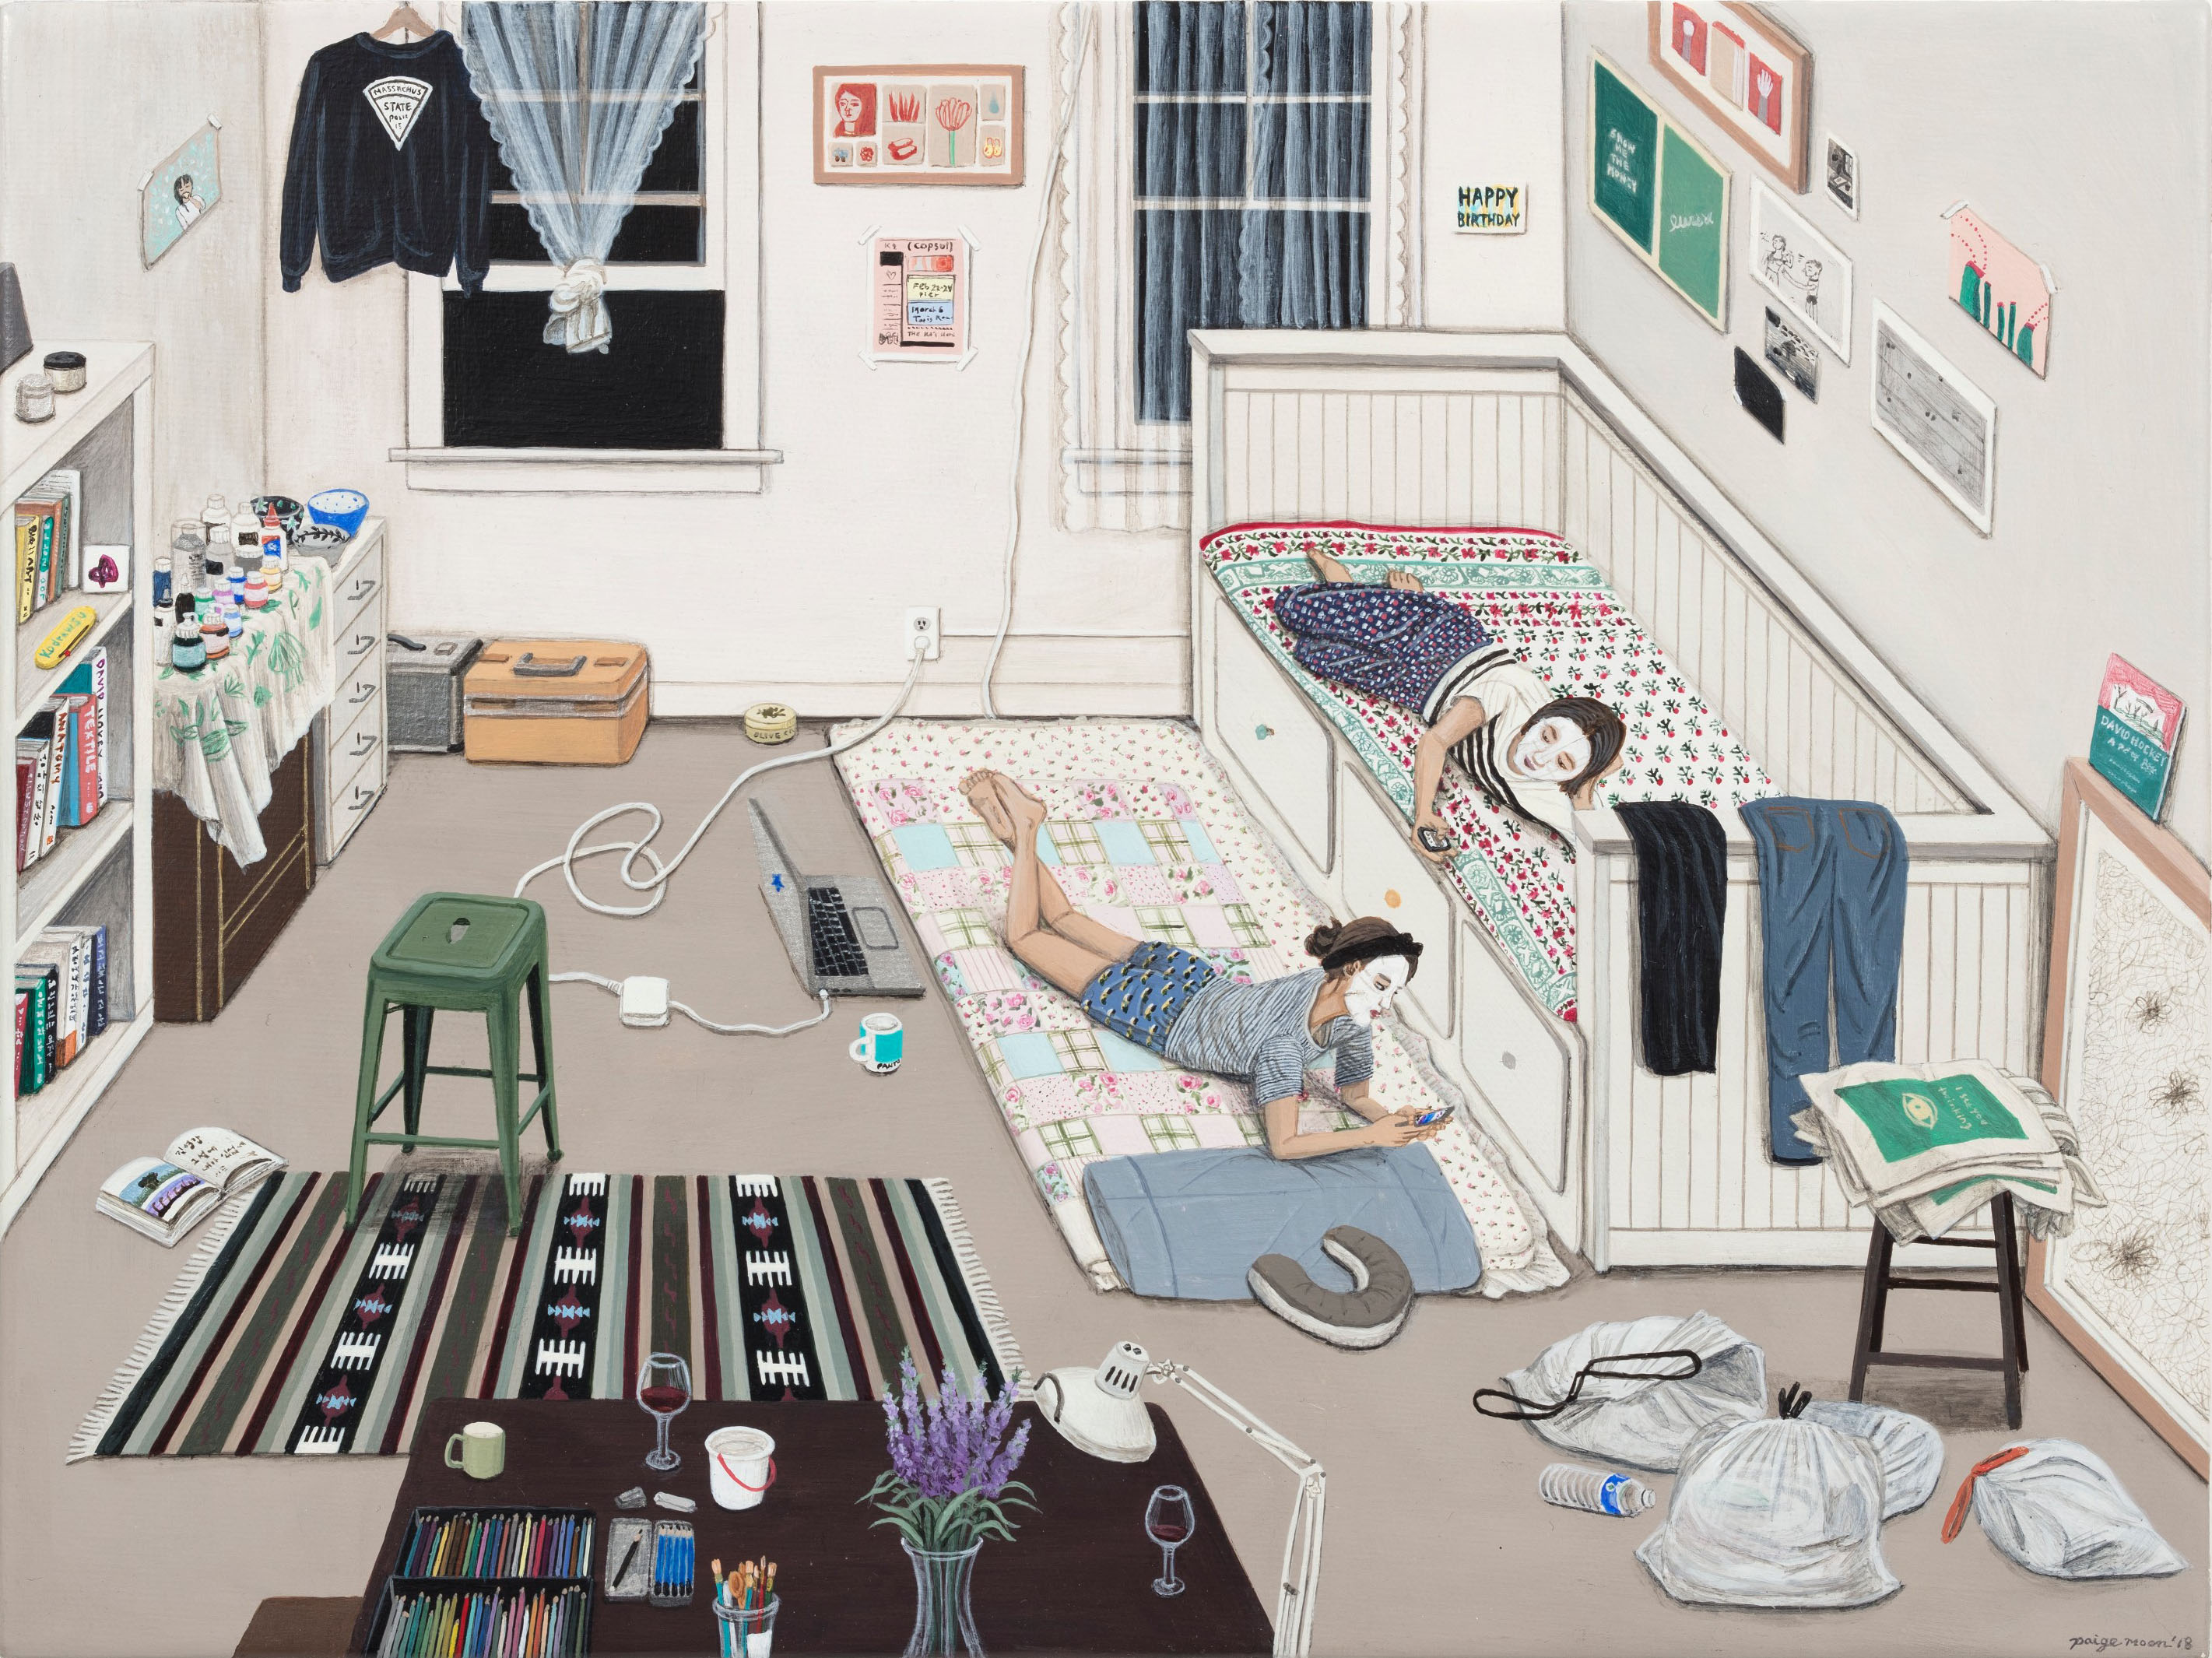 Paige Jiyoung Moon. <em>Ko's Old Apartment</em>, 2018. Acrylic on panel, 9 1/2 x 12 inches (24.1 x 30.5 cm)